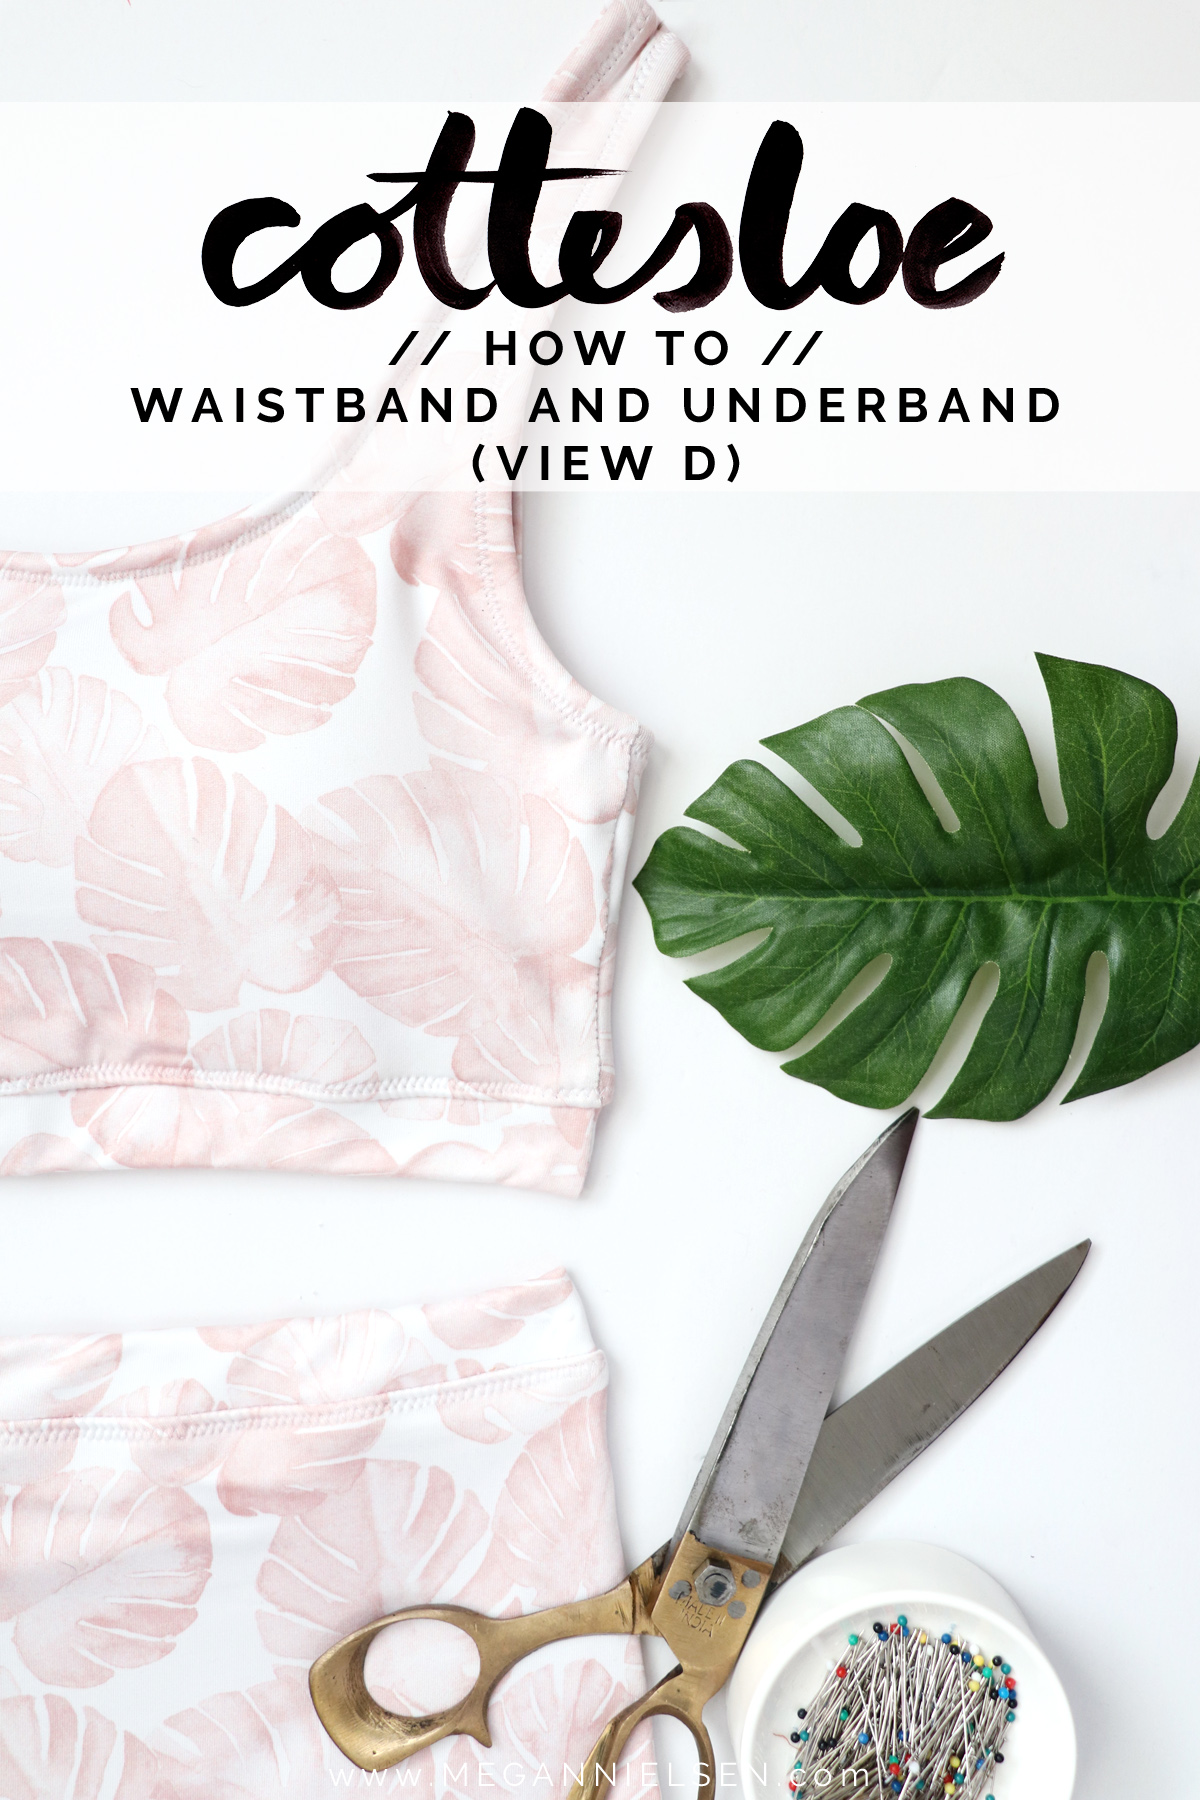 how to sew the waistband and underband for view D of the Cottesloe swimsuit by Megan Nielsen Patterns